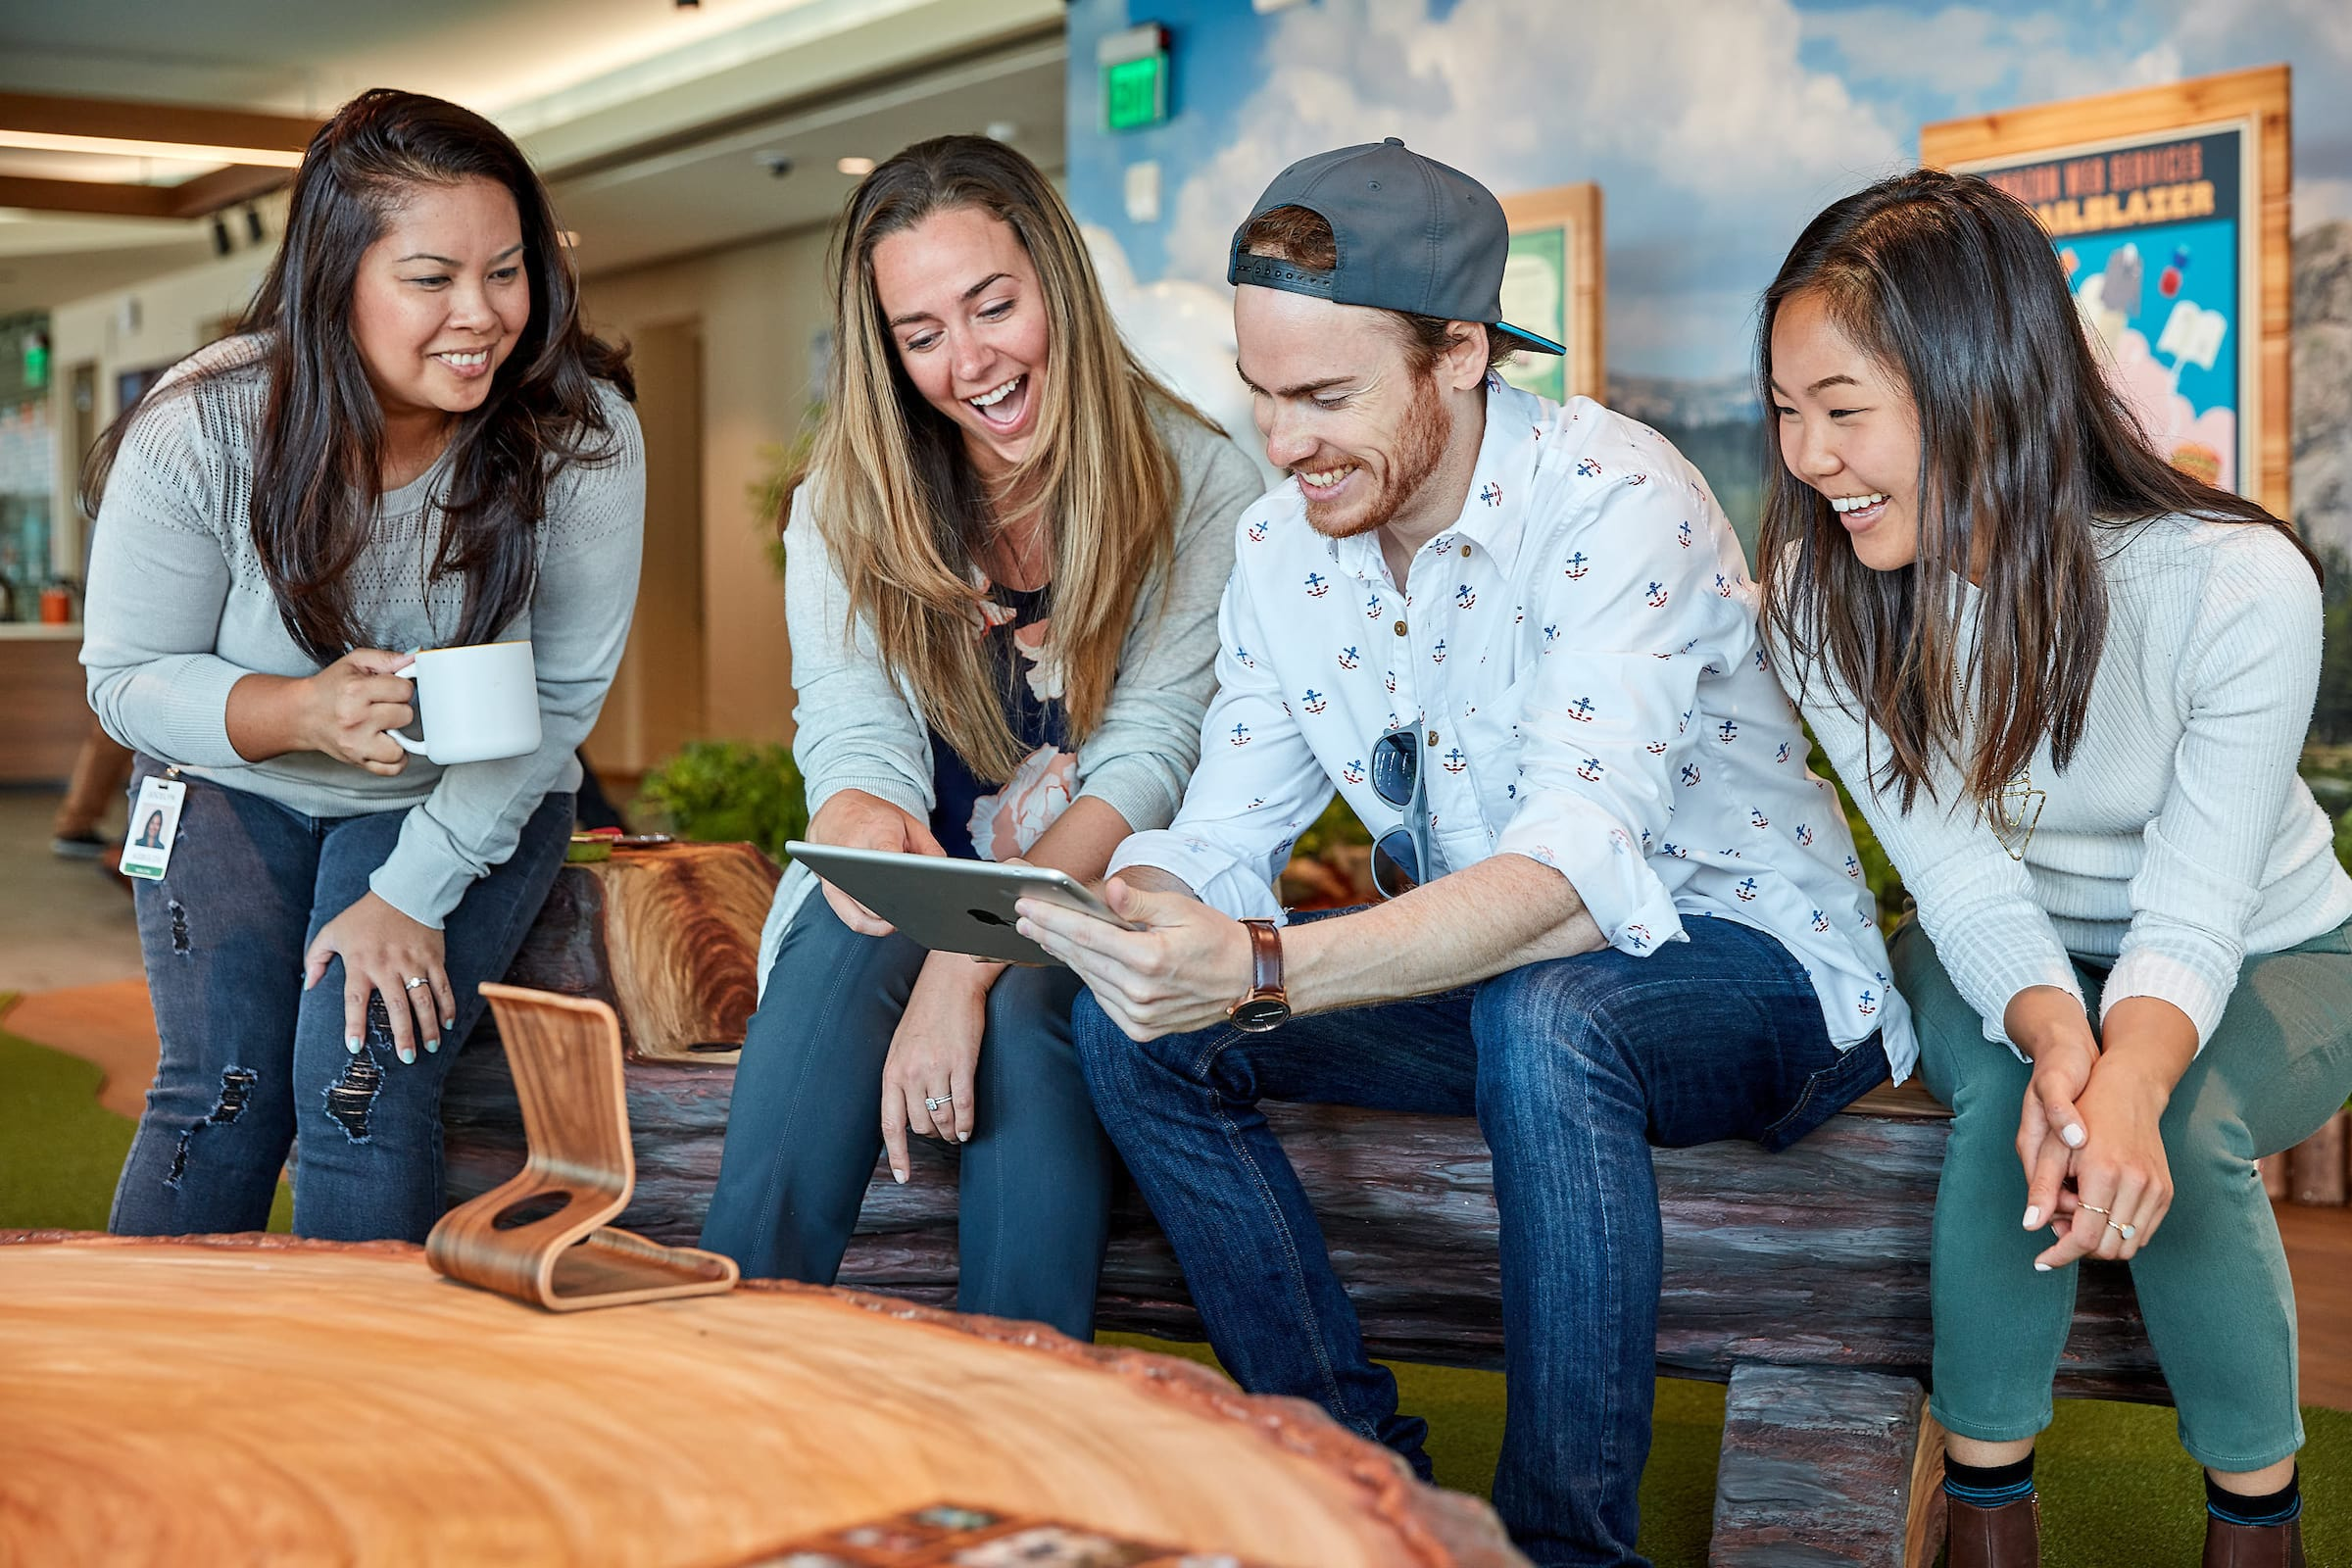 Image showing happy Salesforce employees collaborating around an iPad